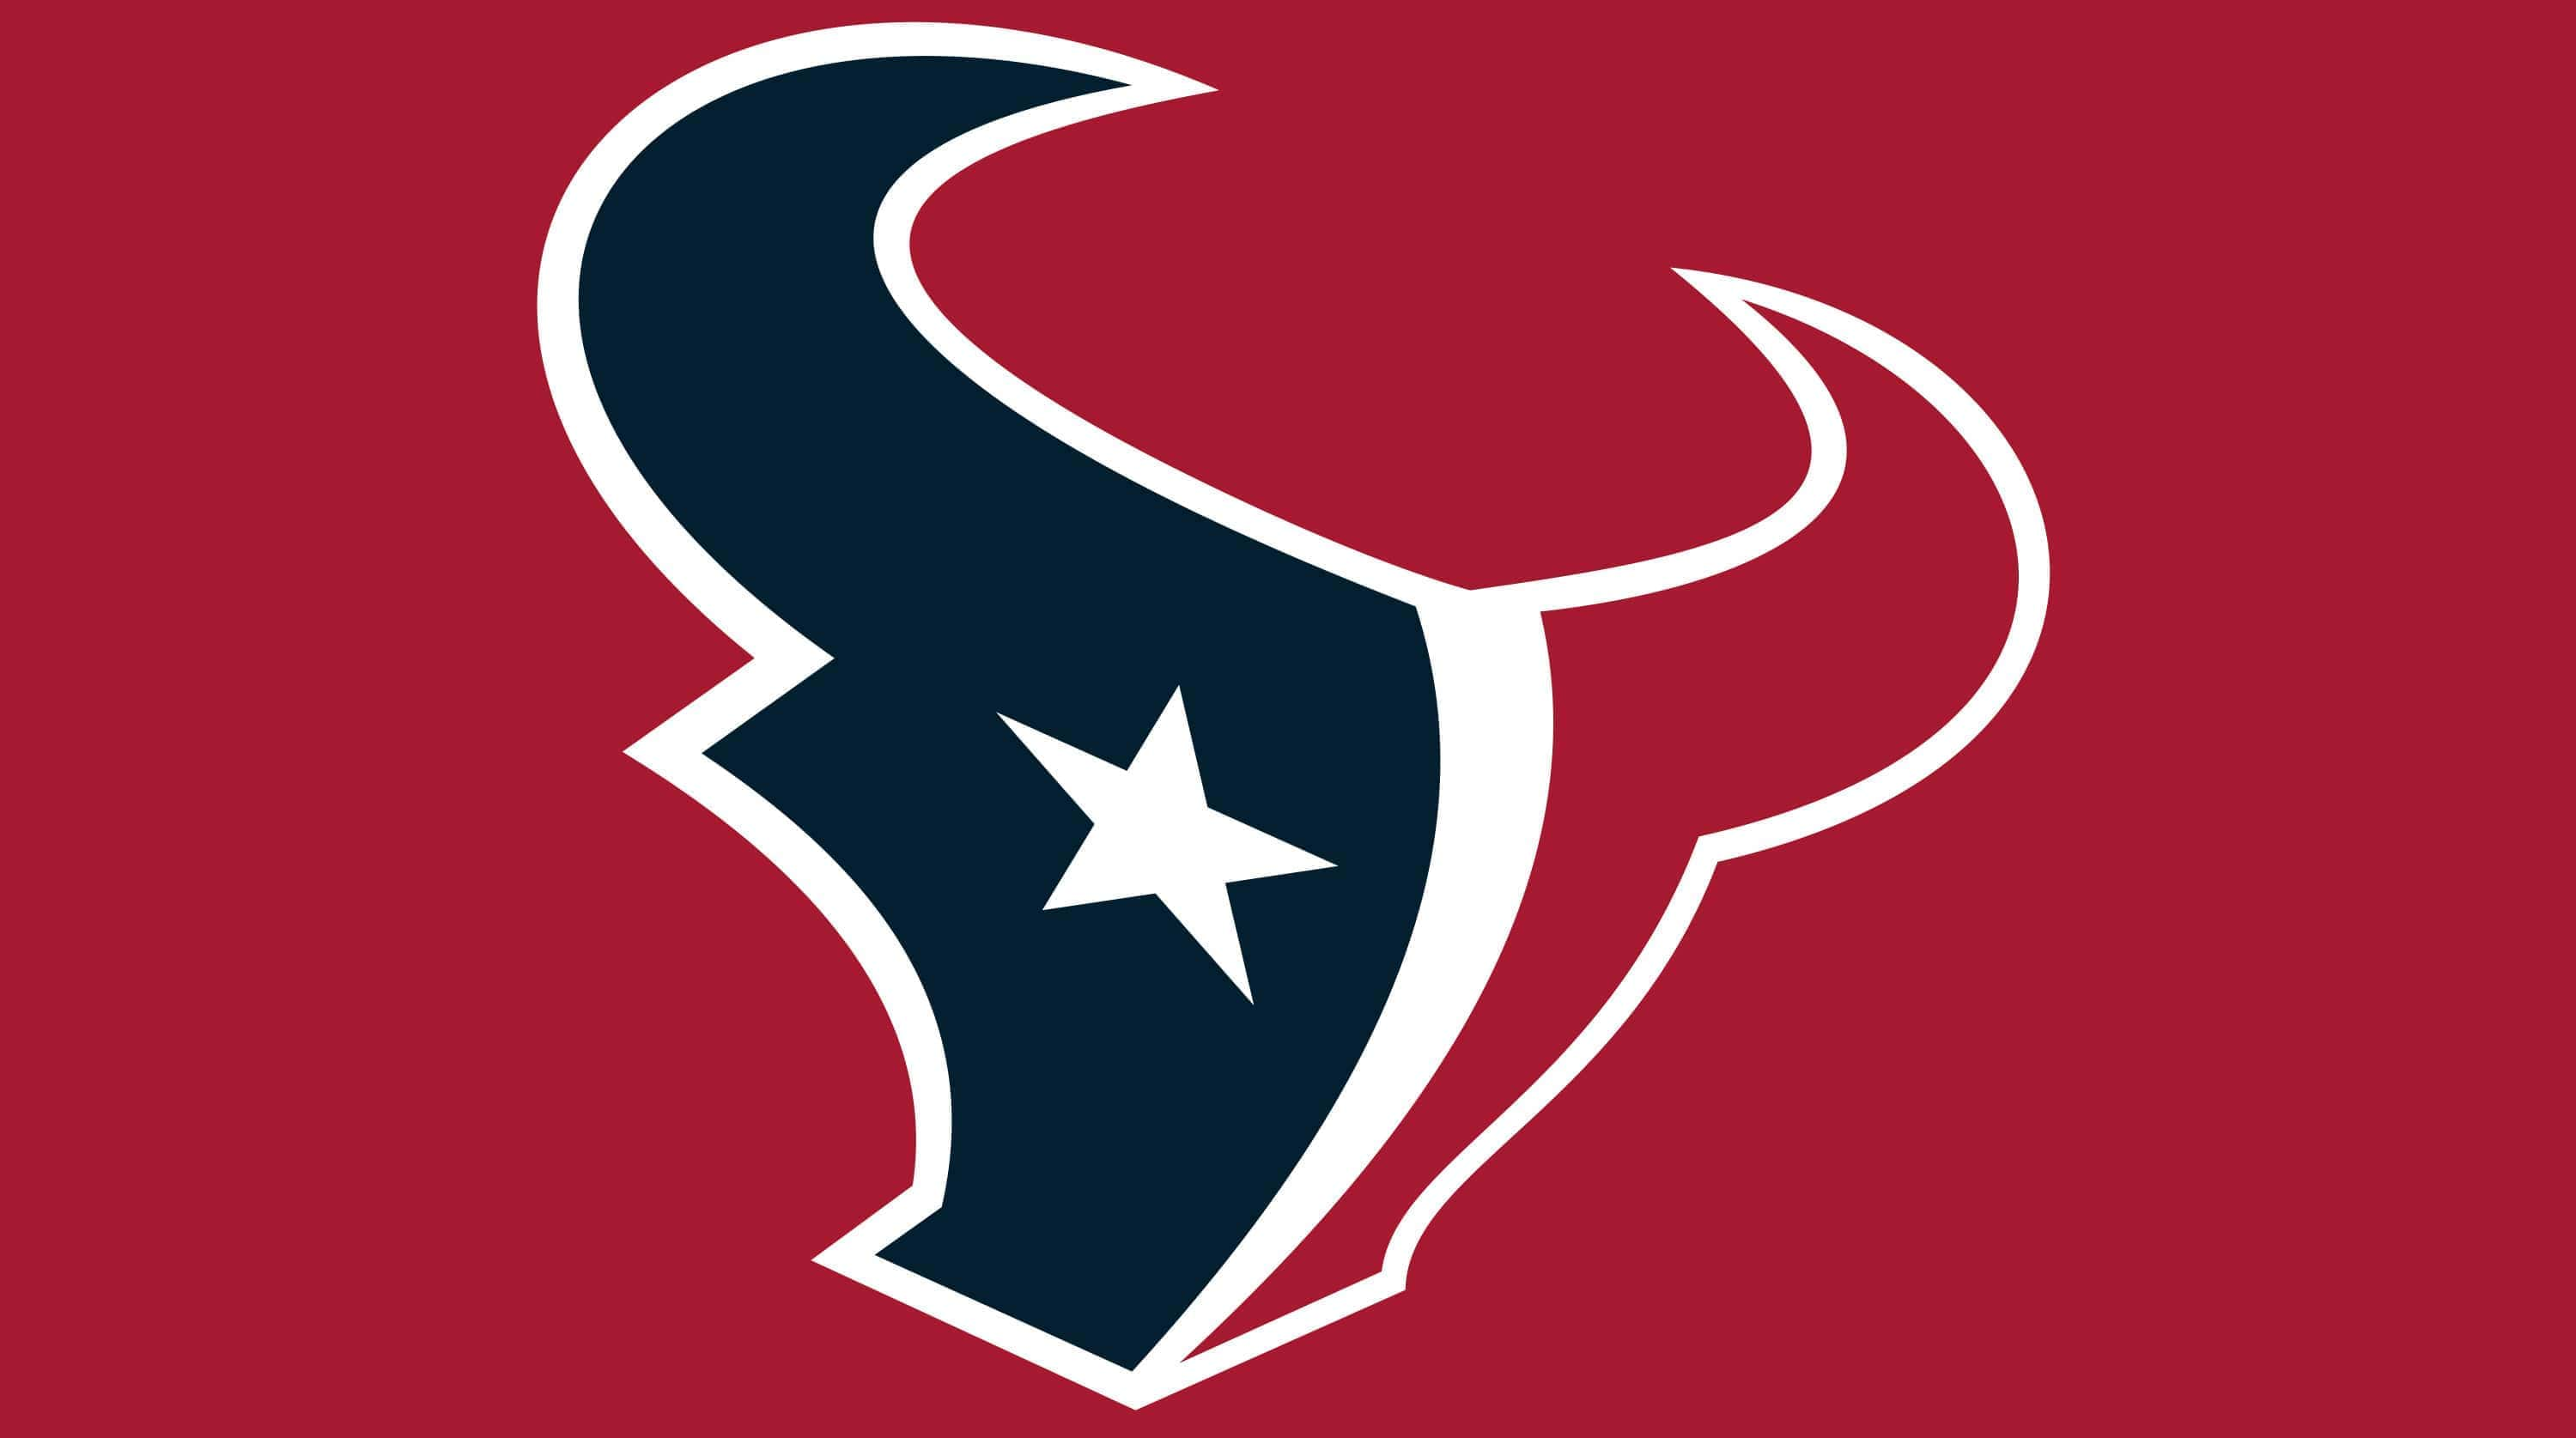 Houston Texans Logo History The Most Famous Brands And Company Logos In The World